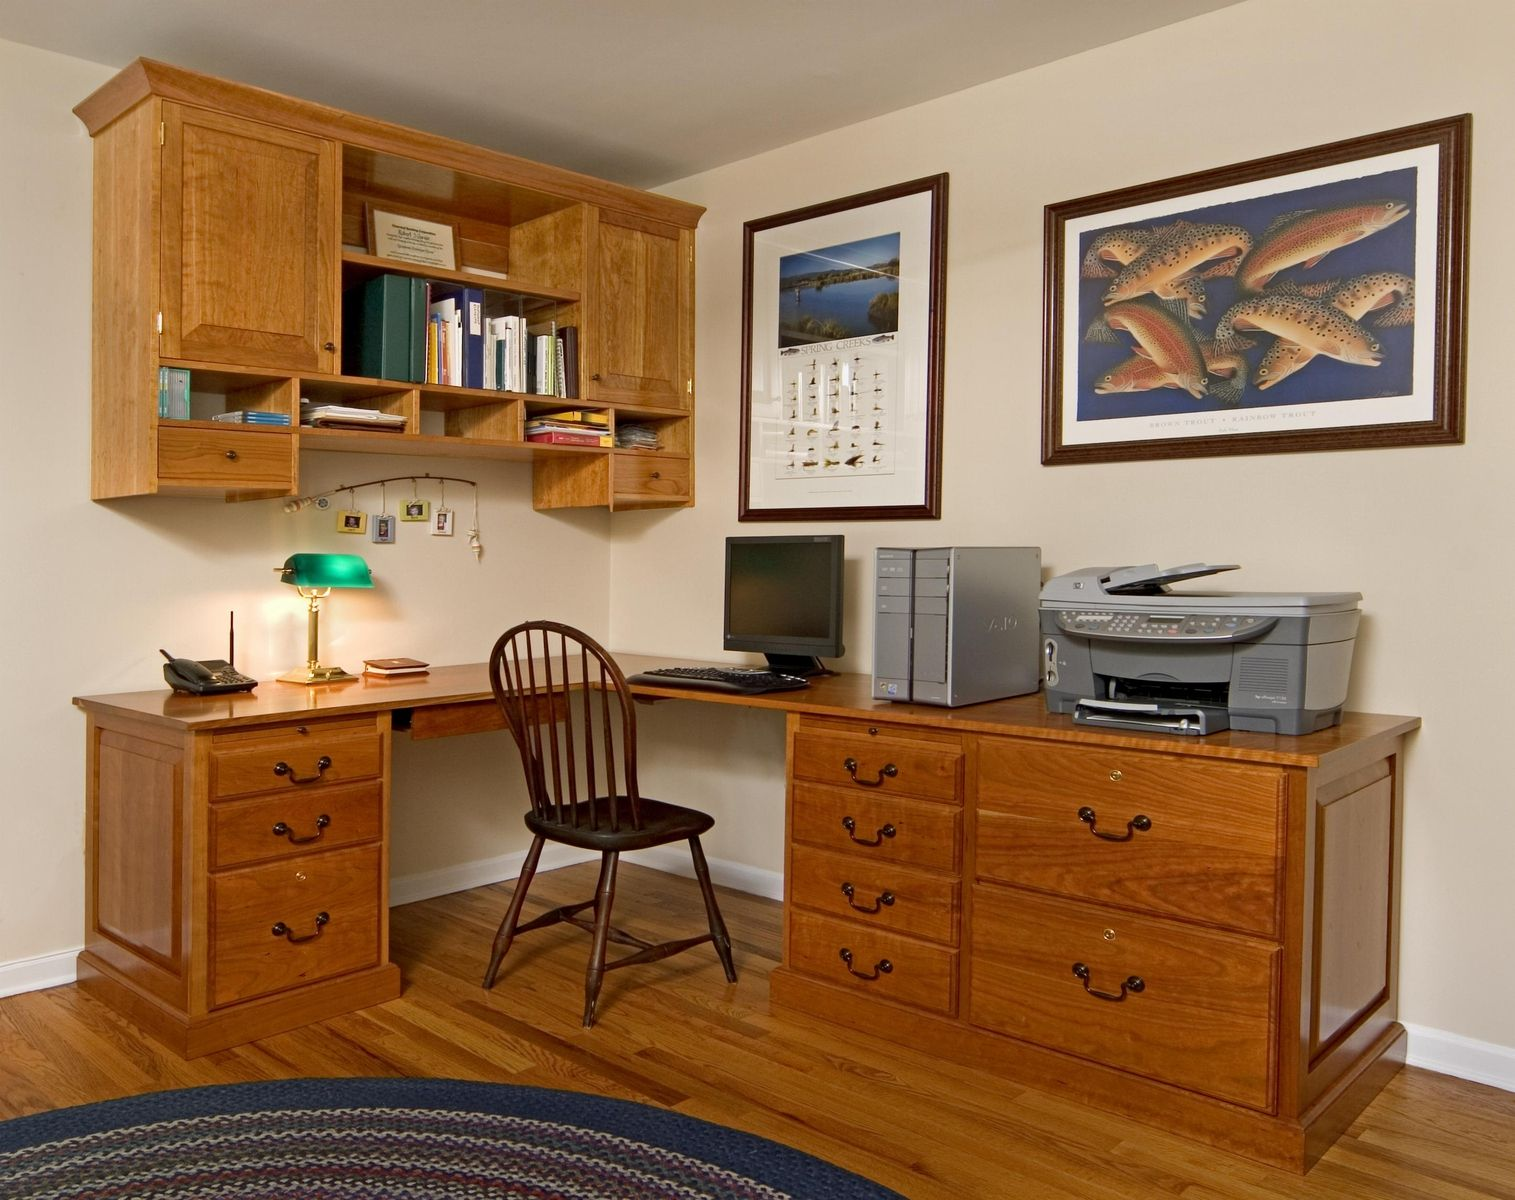 Handmade custom home office desk and cabinet by john landis cabinetworks - Custom office desk ...